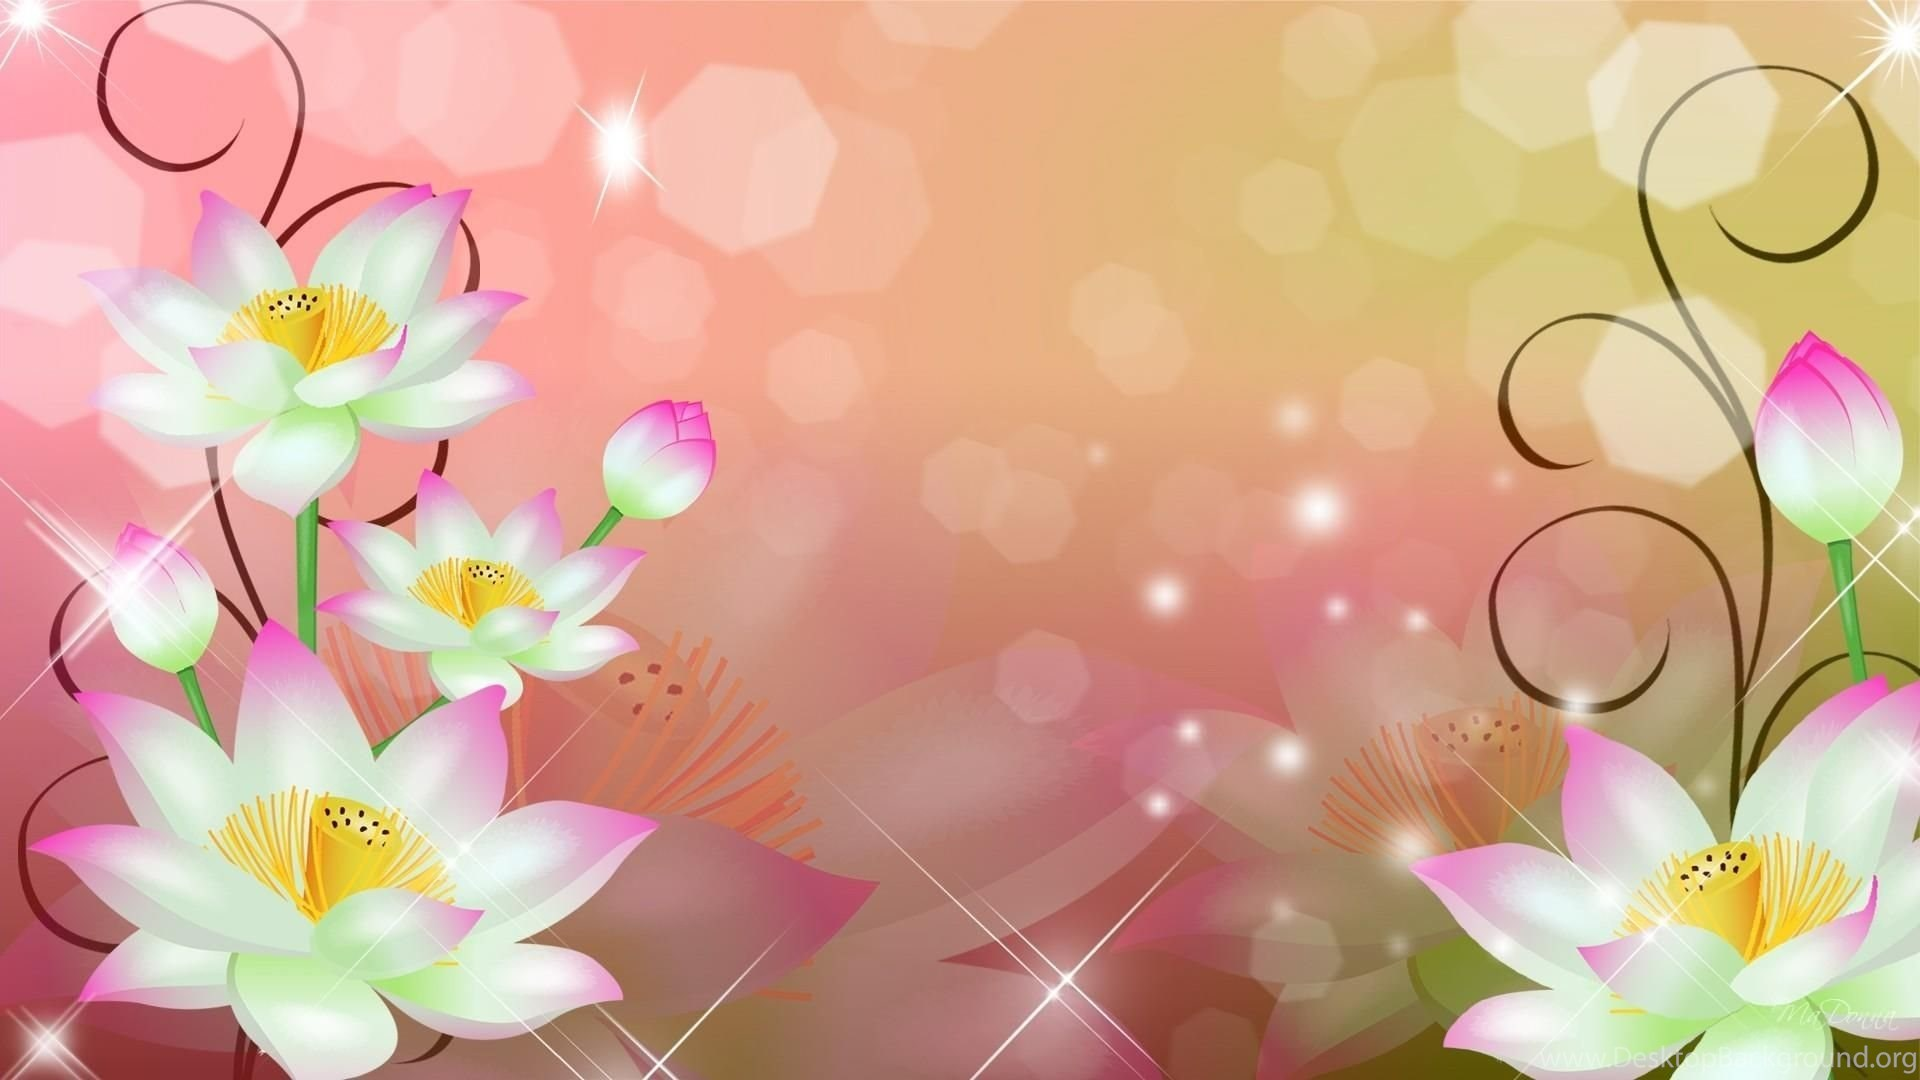 Abstract Flowers Wallpapers Desktop Background